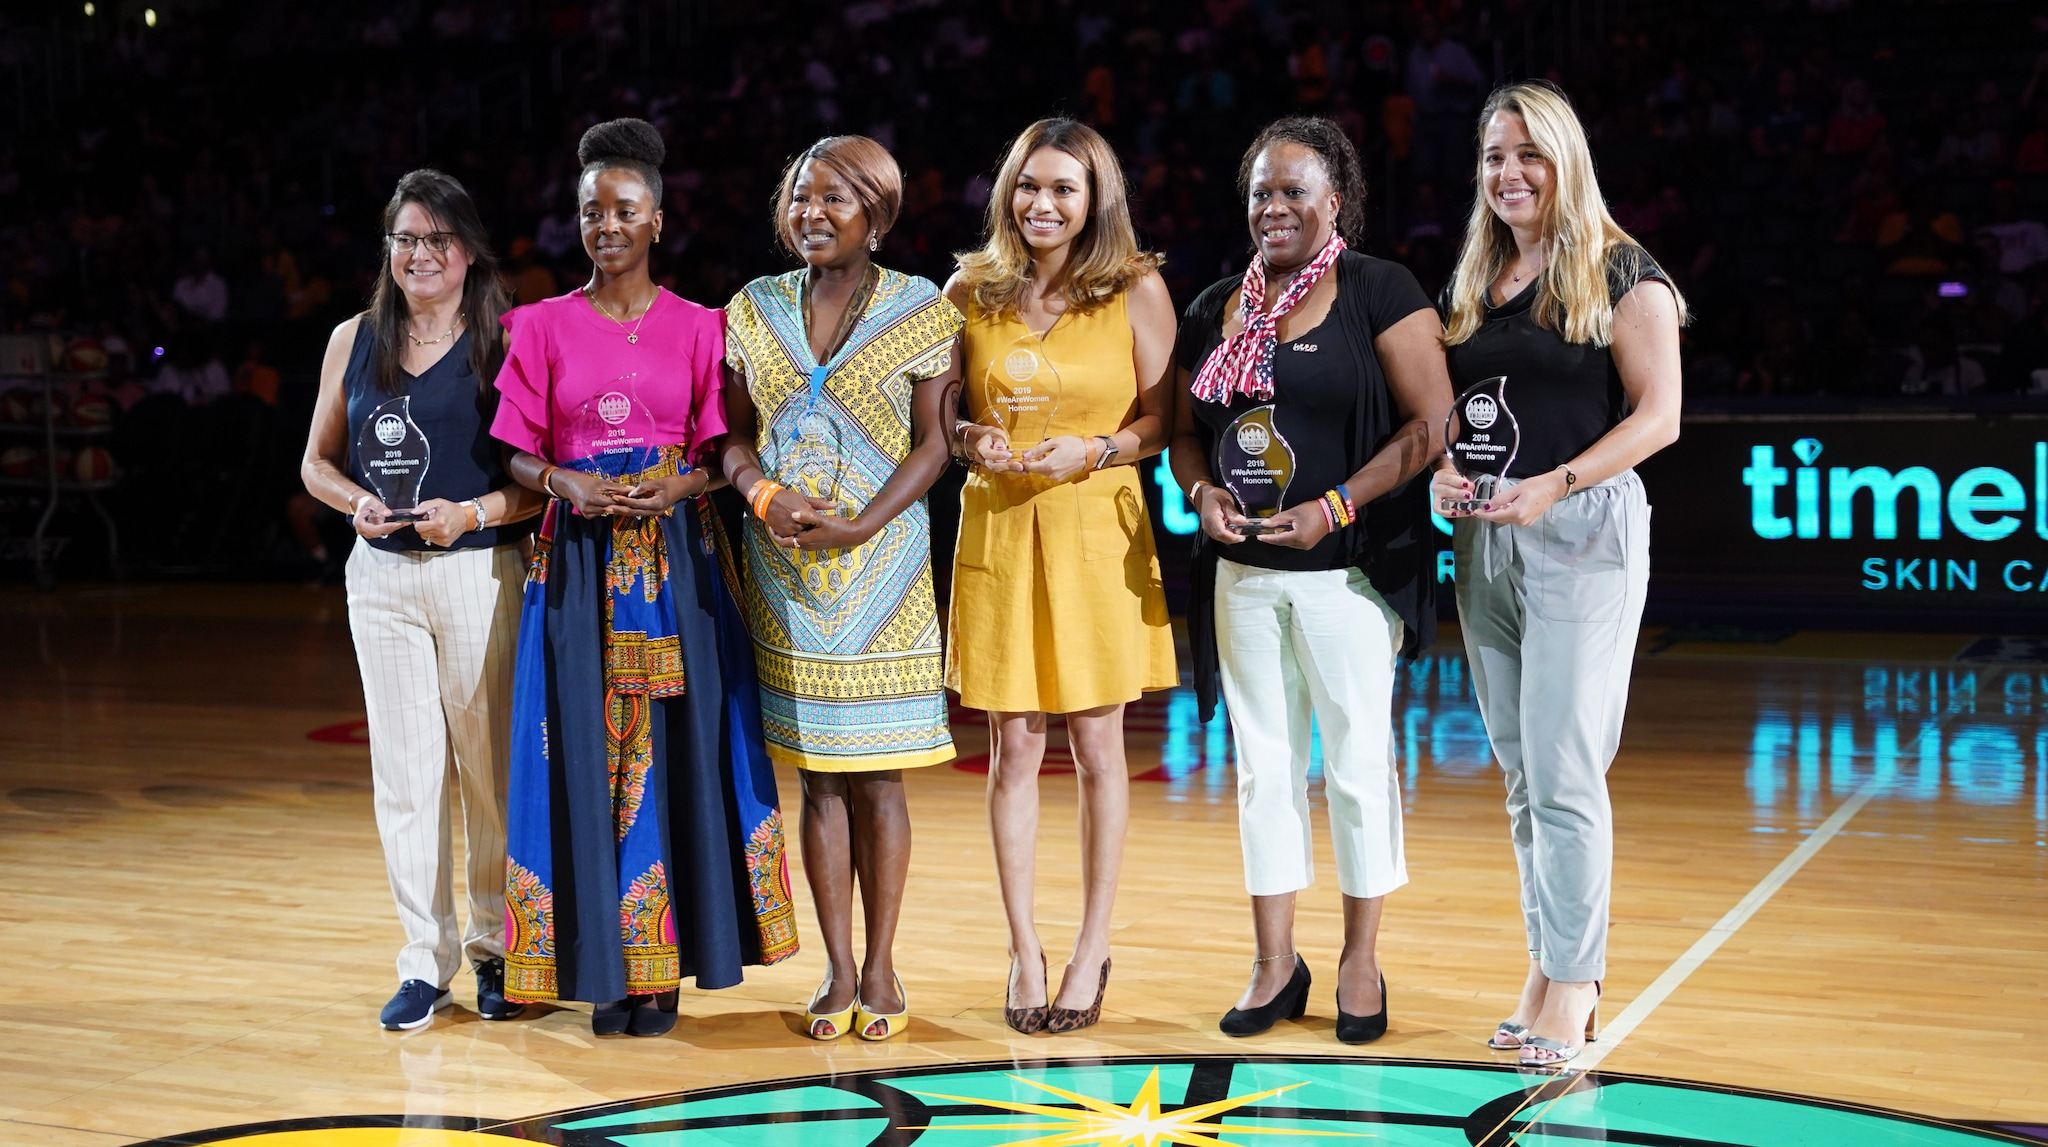 2019 Woman of the Year Award Finalists